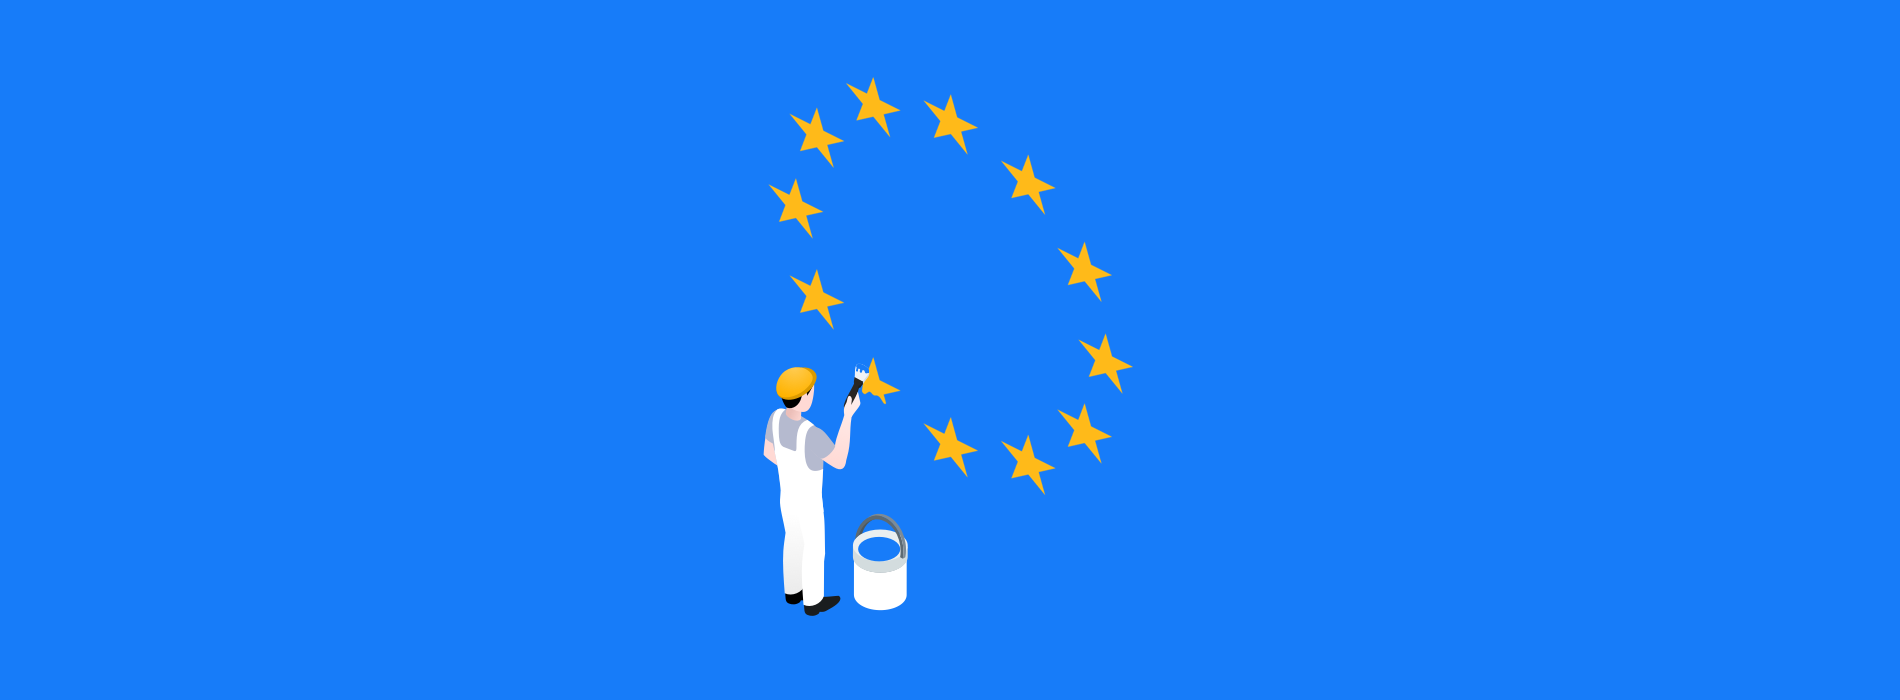 No Deal Brexit Preparation: What Do SaleCycle Intend to Do?